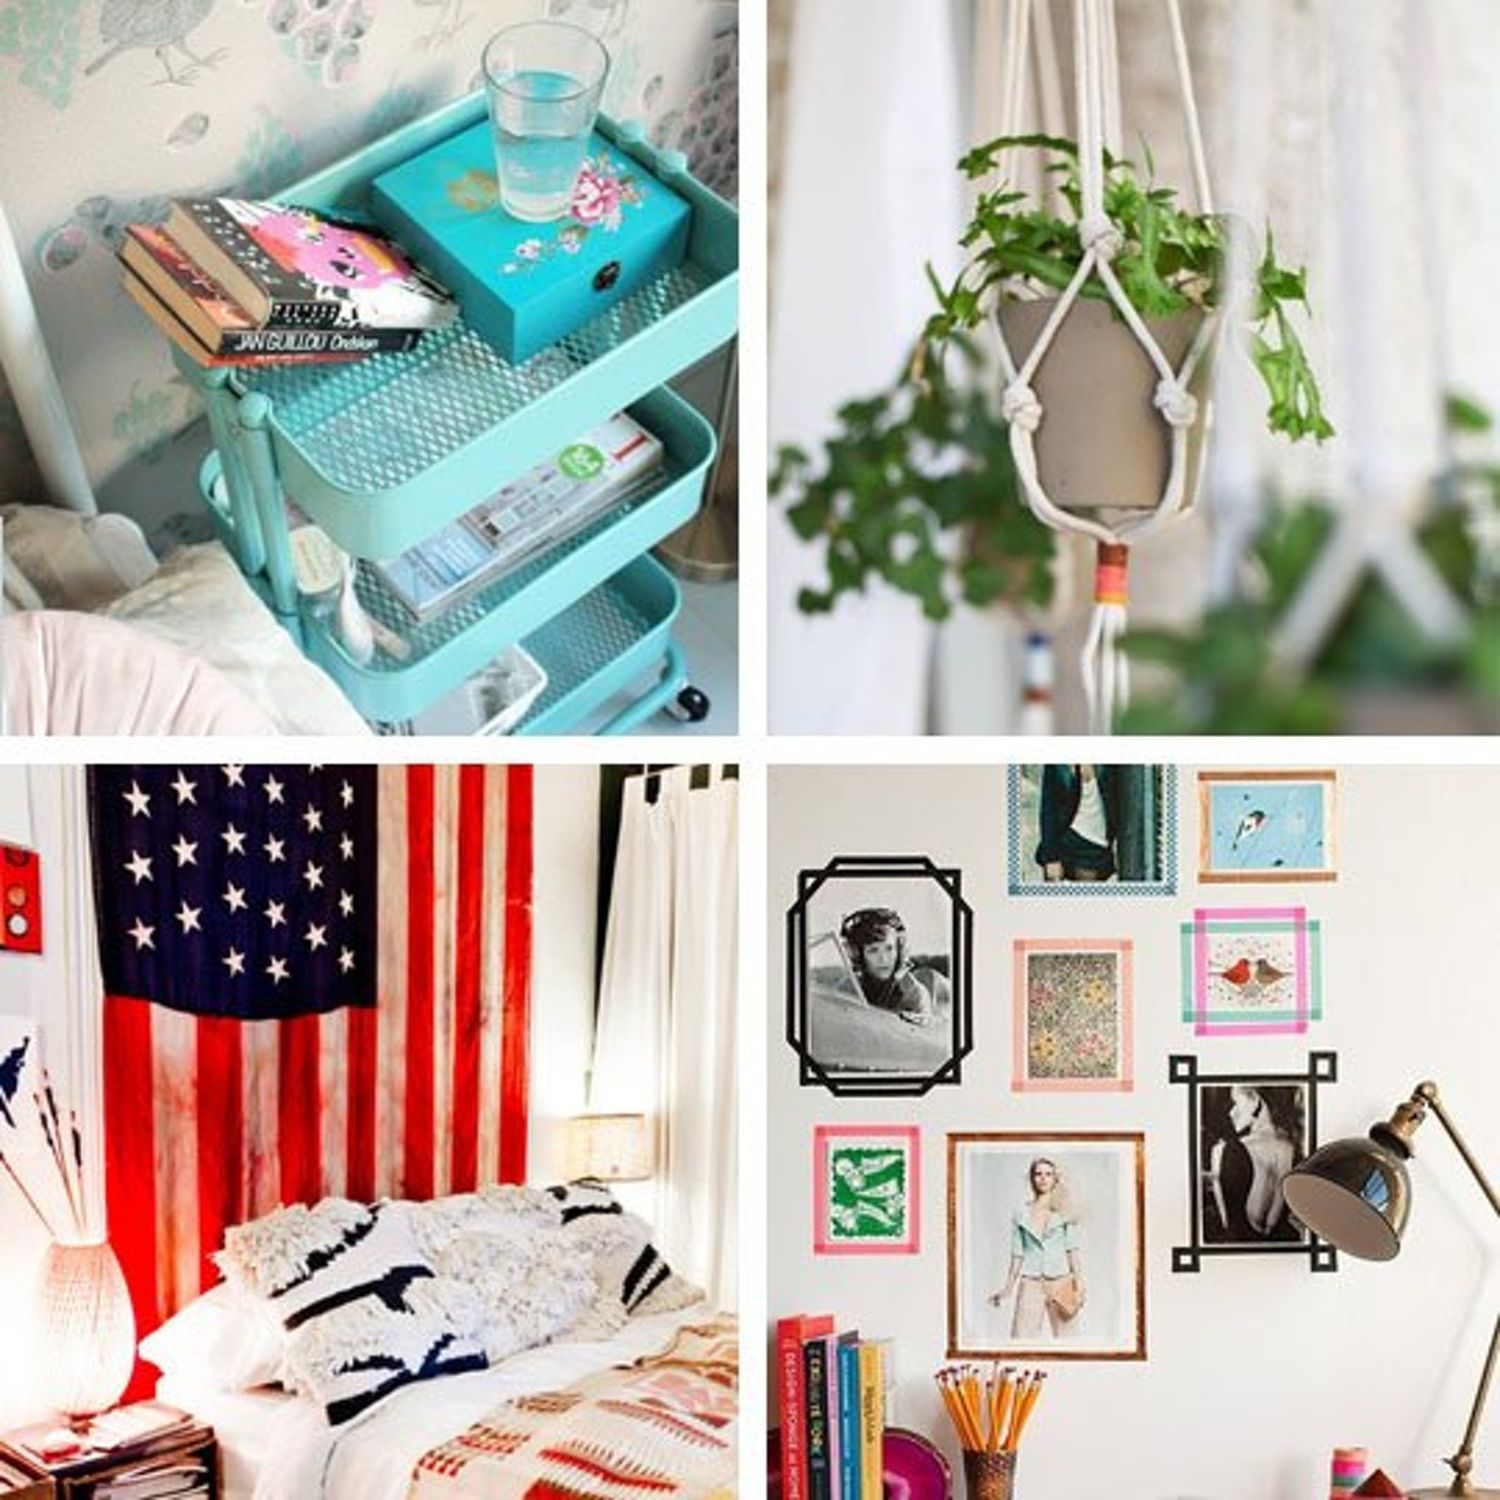 25 Creative DIY Ideas + Decorating Tips for Your Dorm Room ...